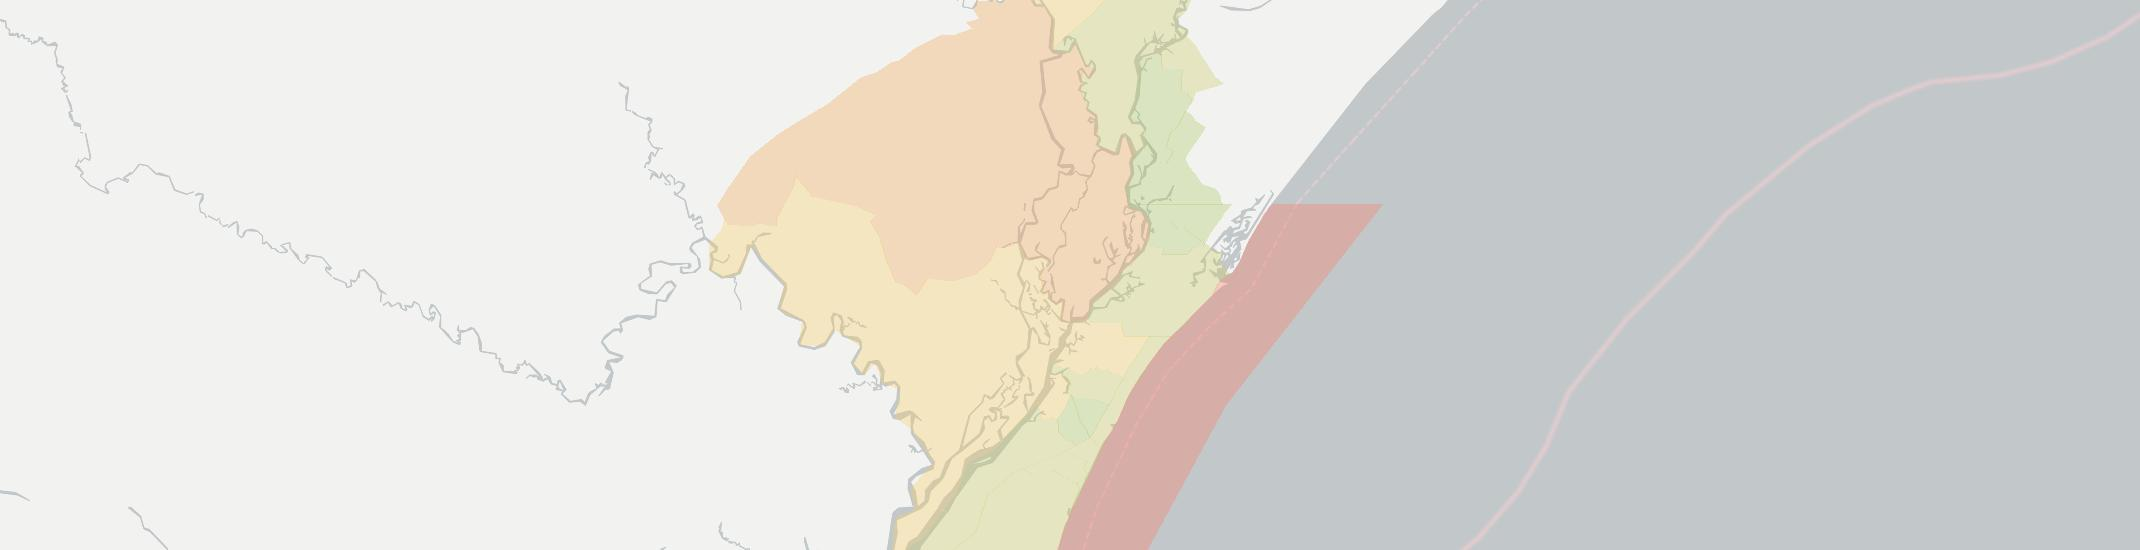 Pawleys Island Internet Competition Map. Click for interactive map.